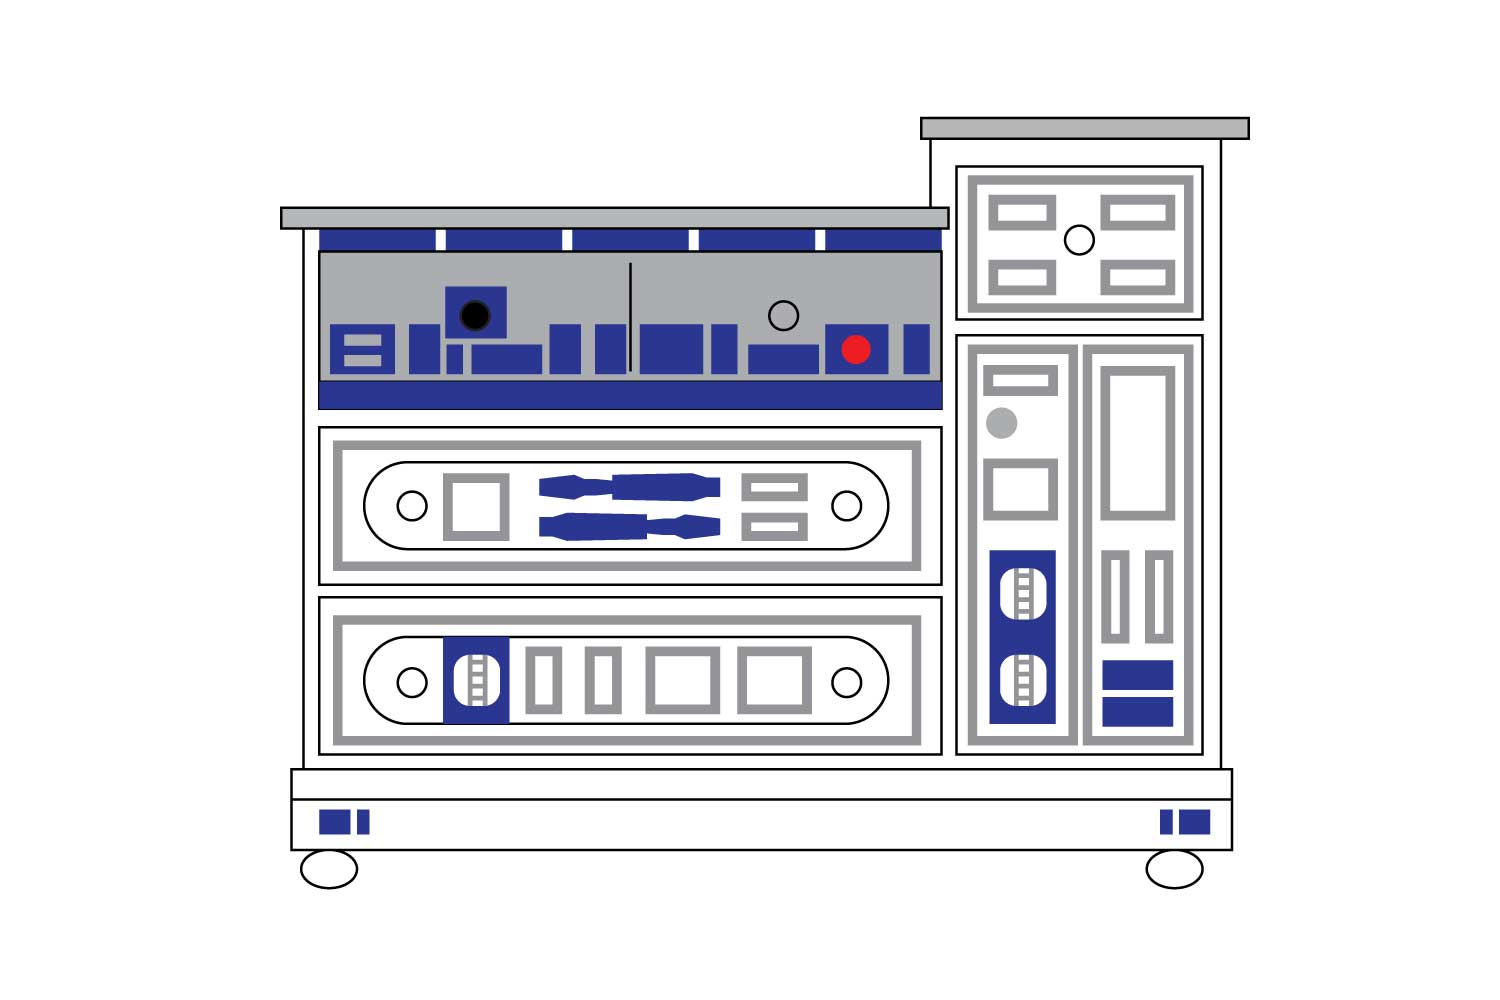 Our plan to make an R2D2 dresser for a Star Wars nursery or boy's room